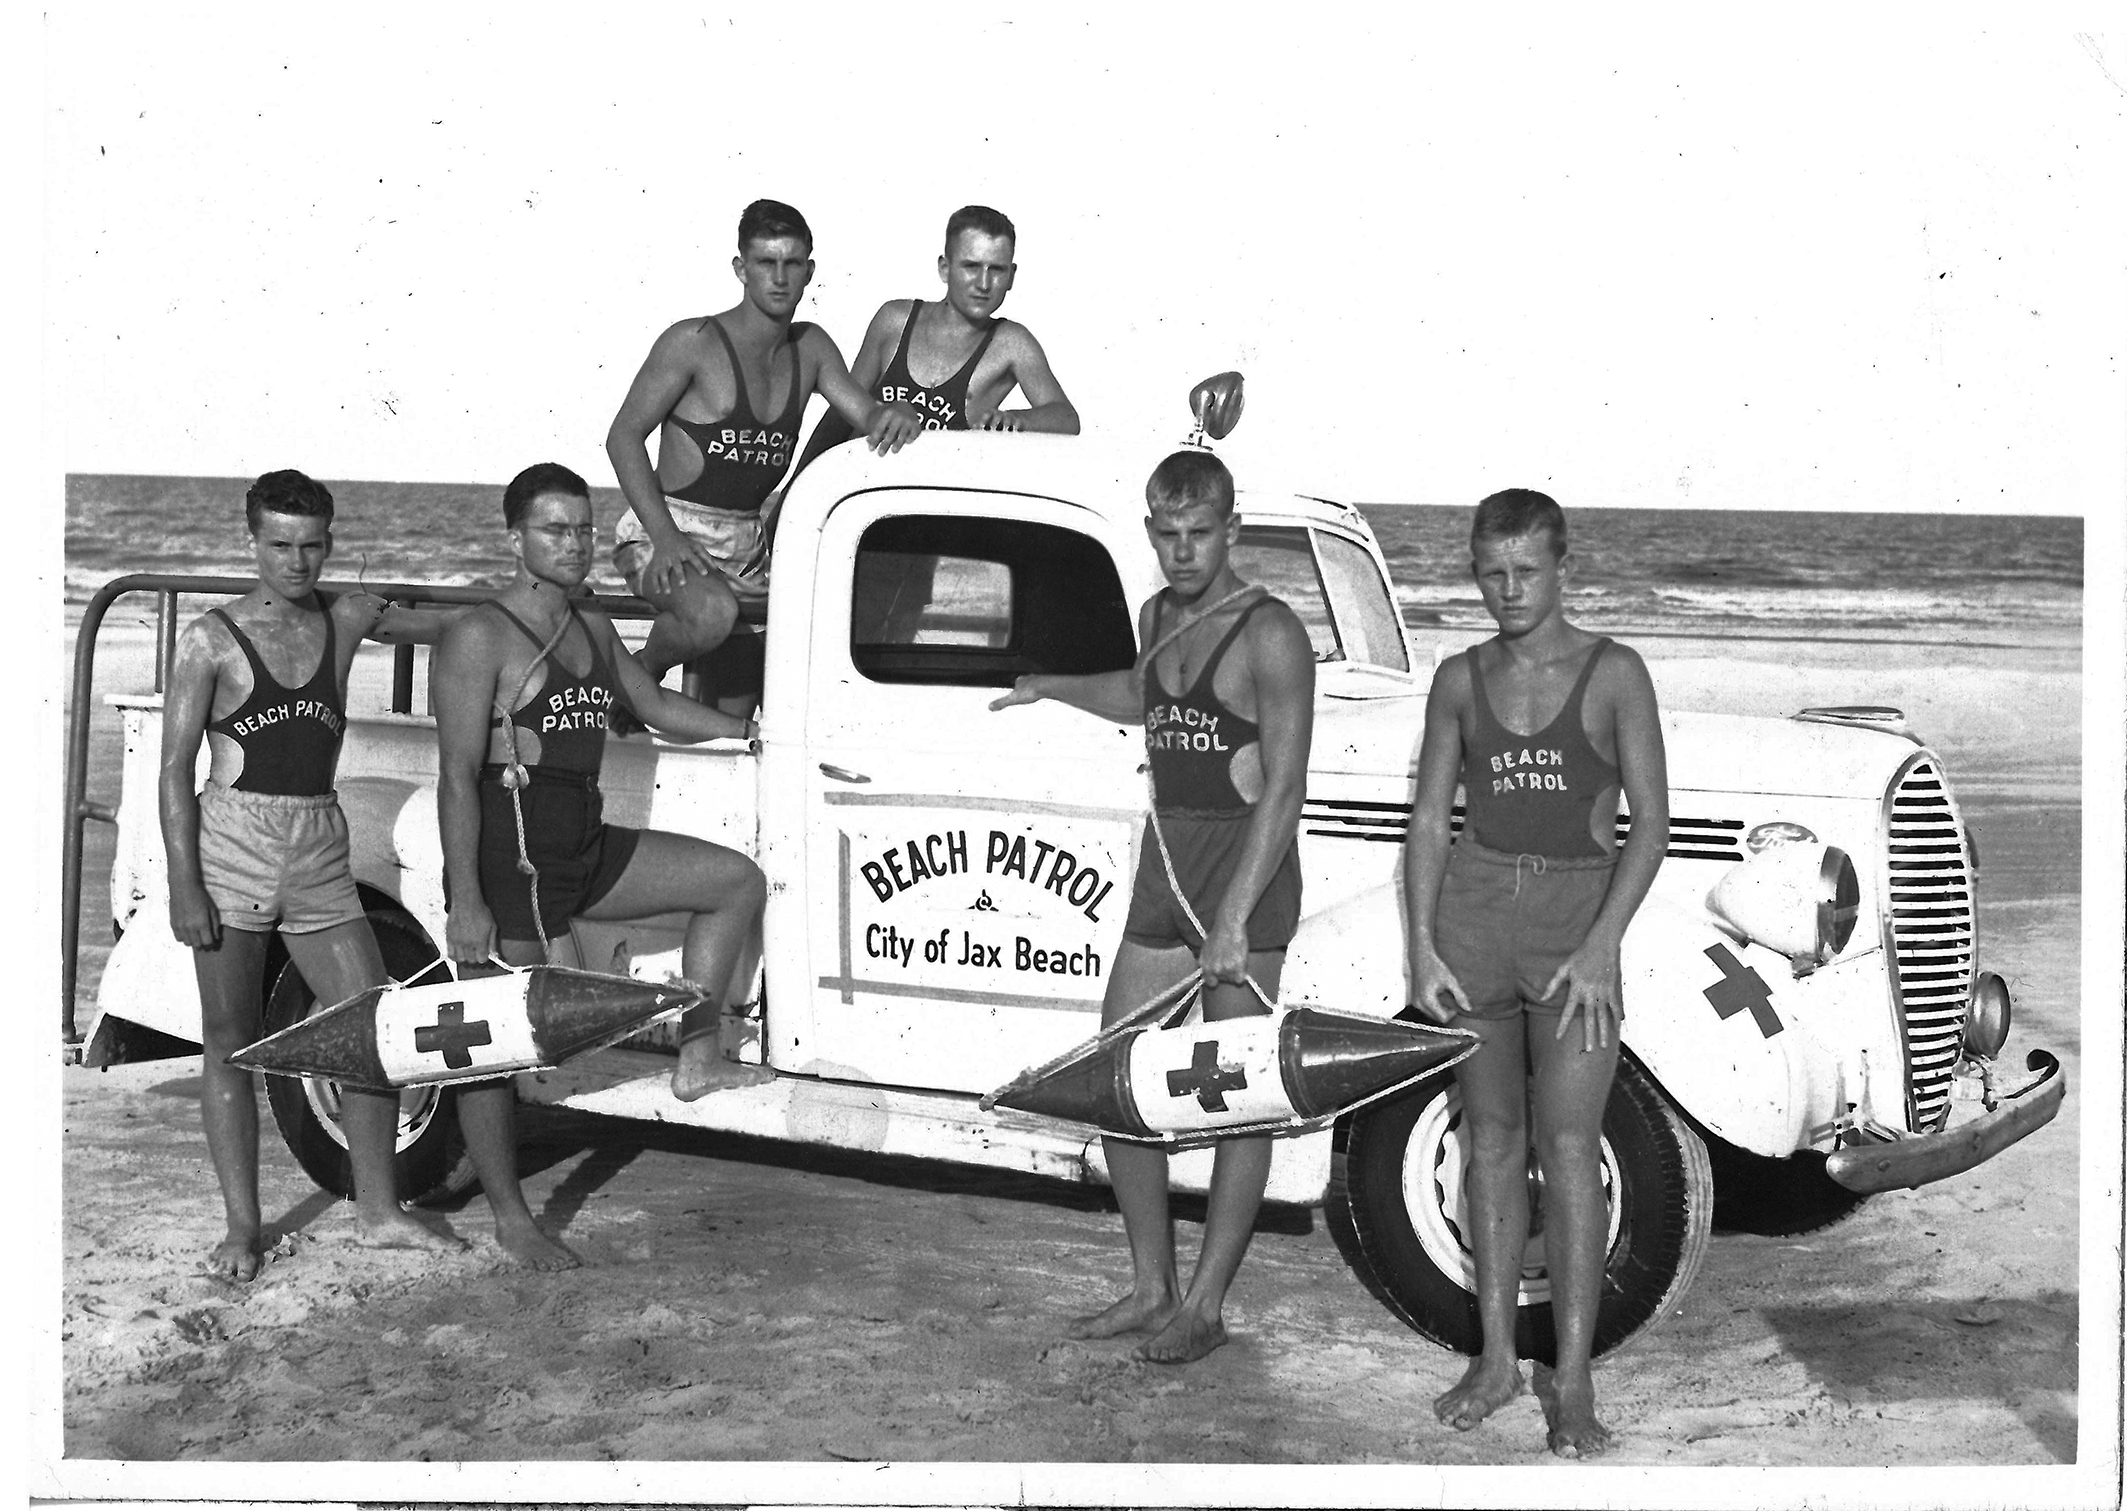 Boardwalk Talk: The History of the Lifeguards